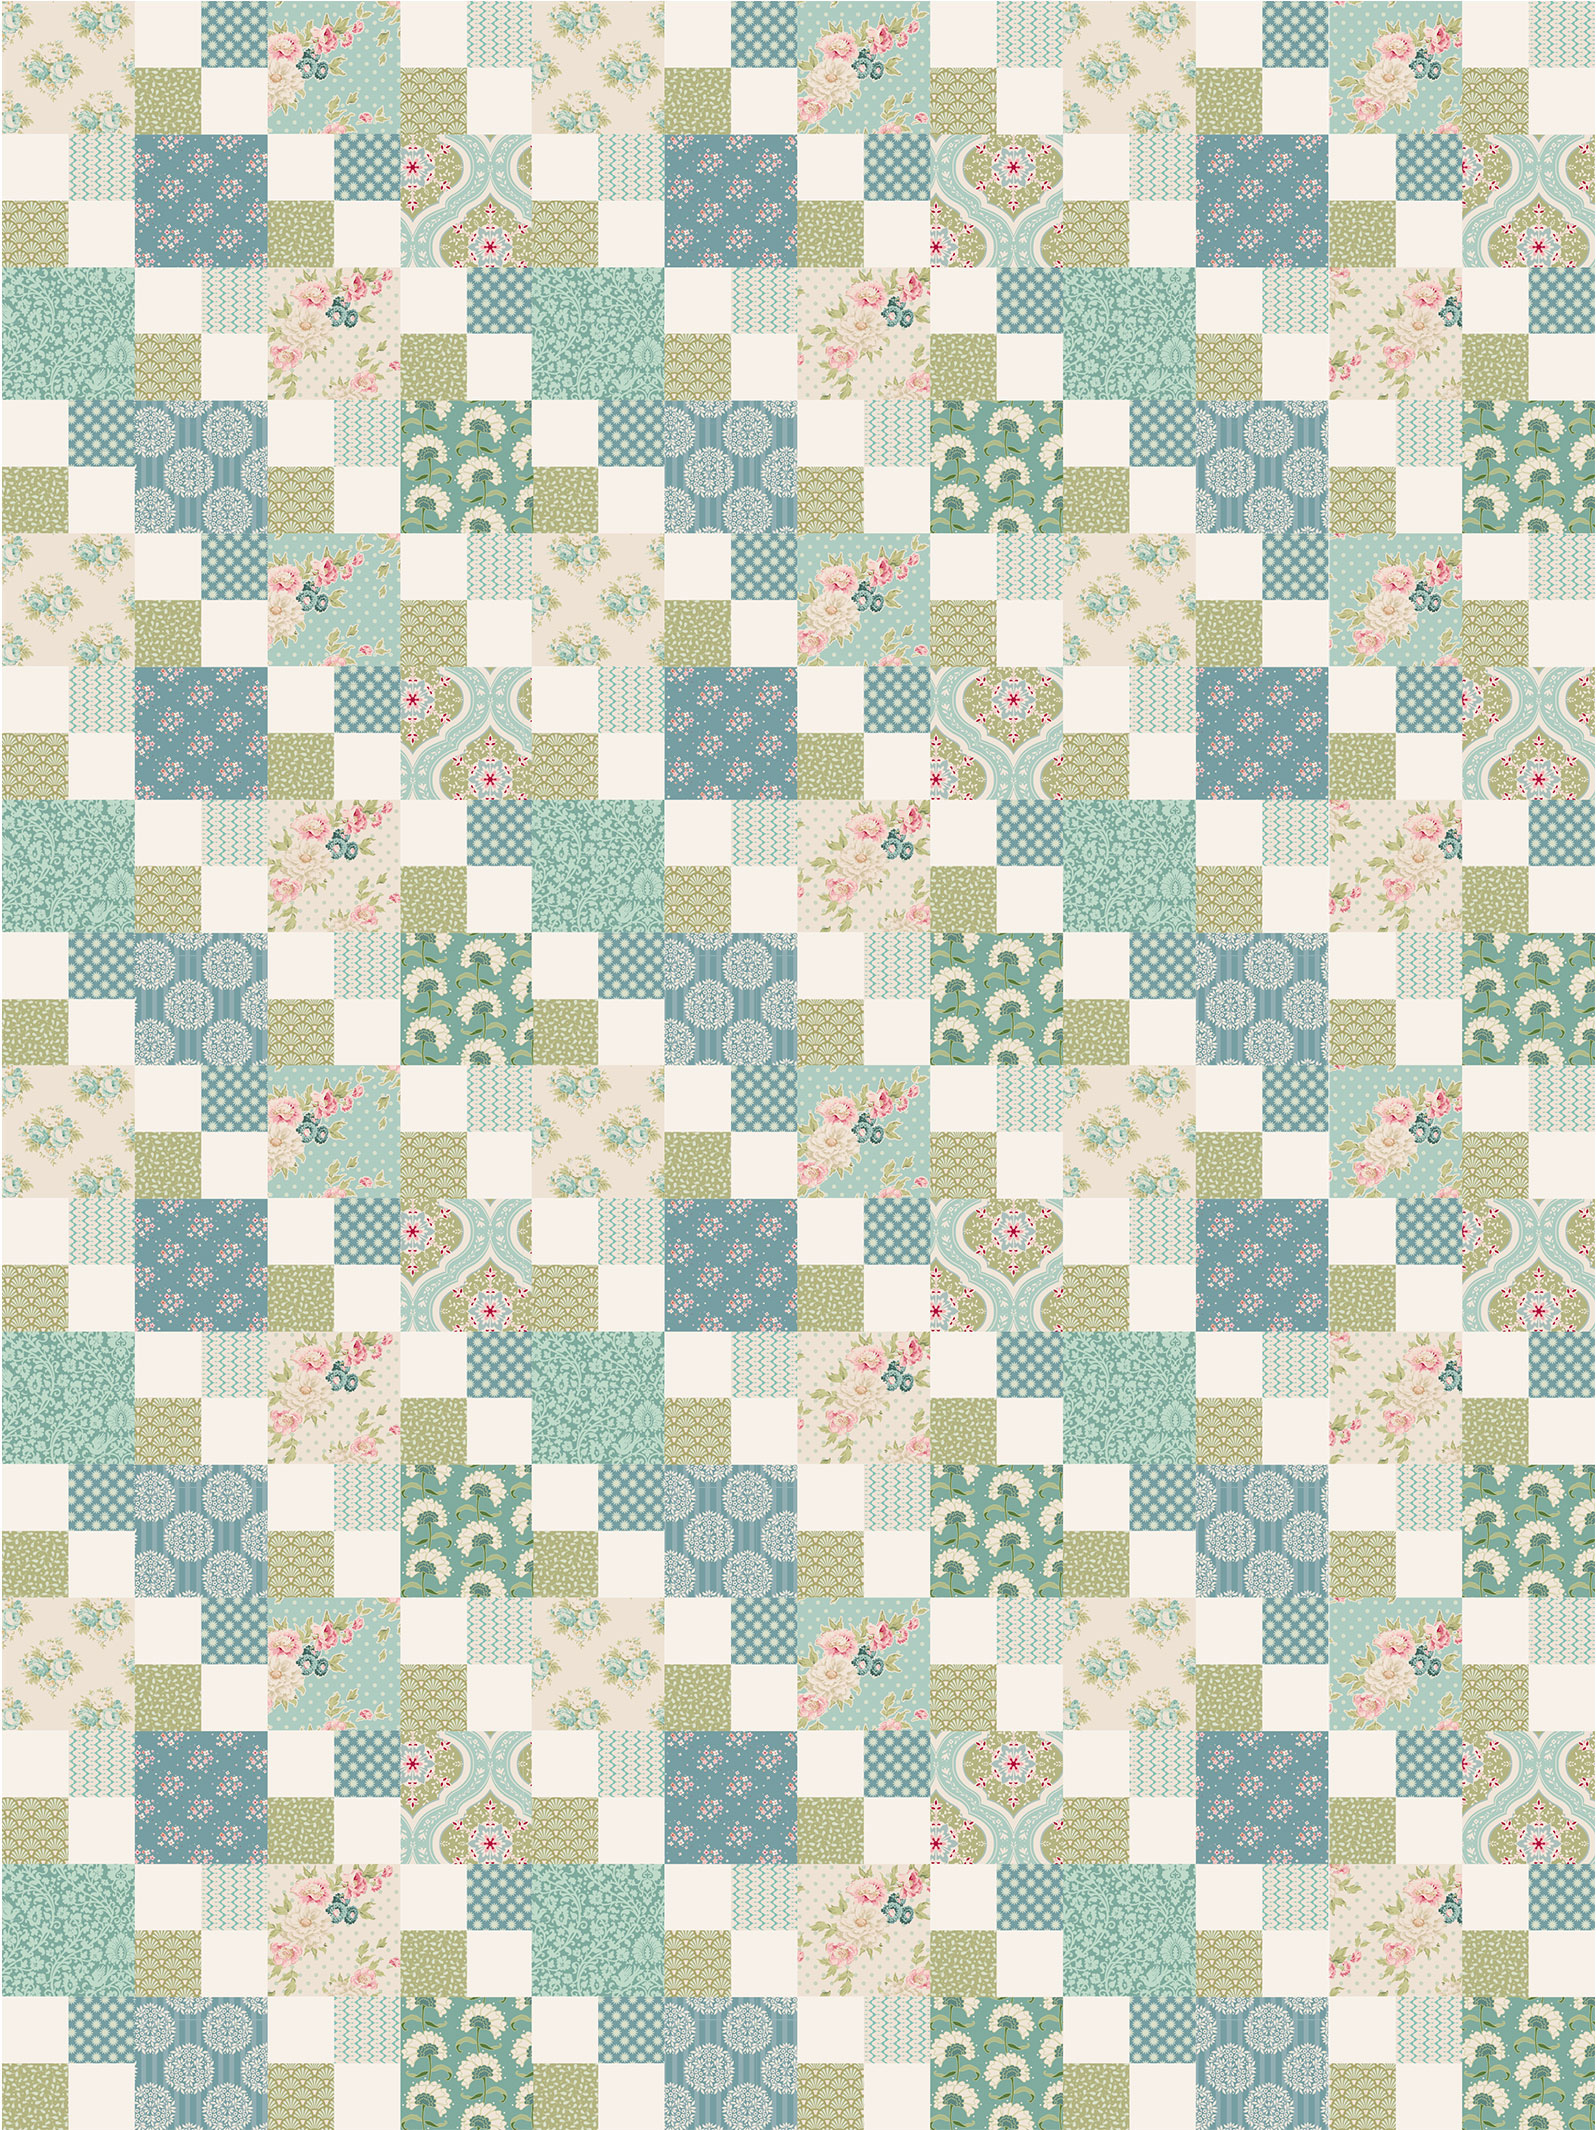 Free Quilting Patterns For Spring : 1000+ images about Tilda-ting on Pinterest Happiness Is, Dolls and World